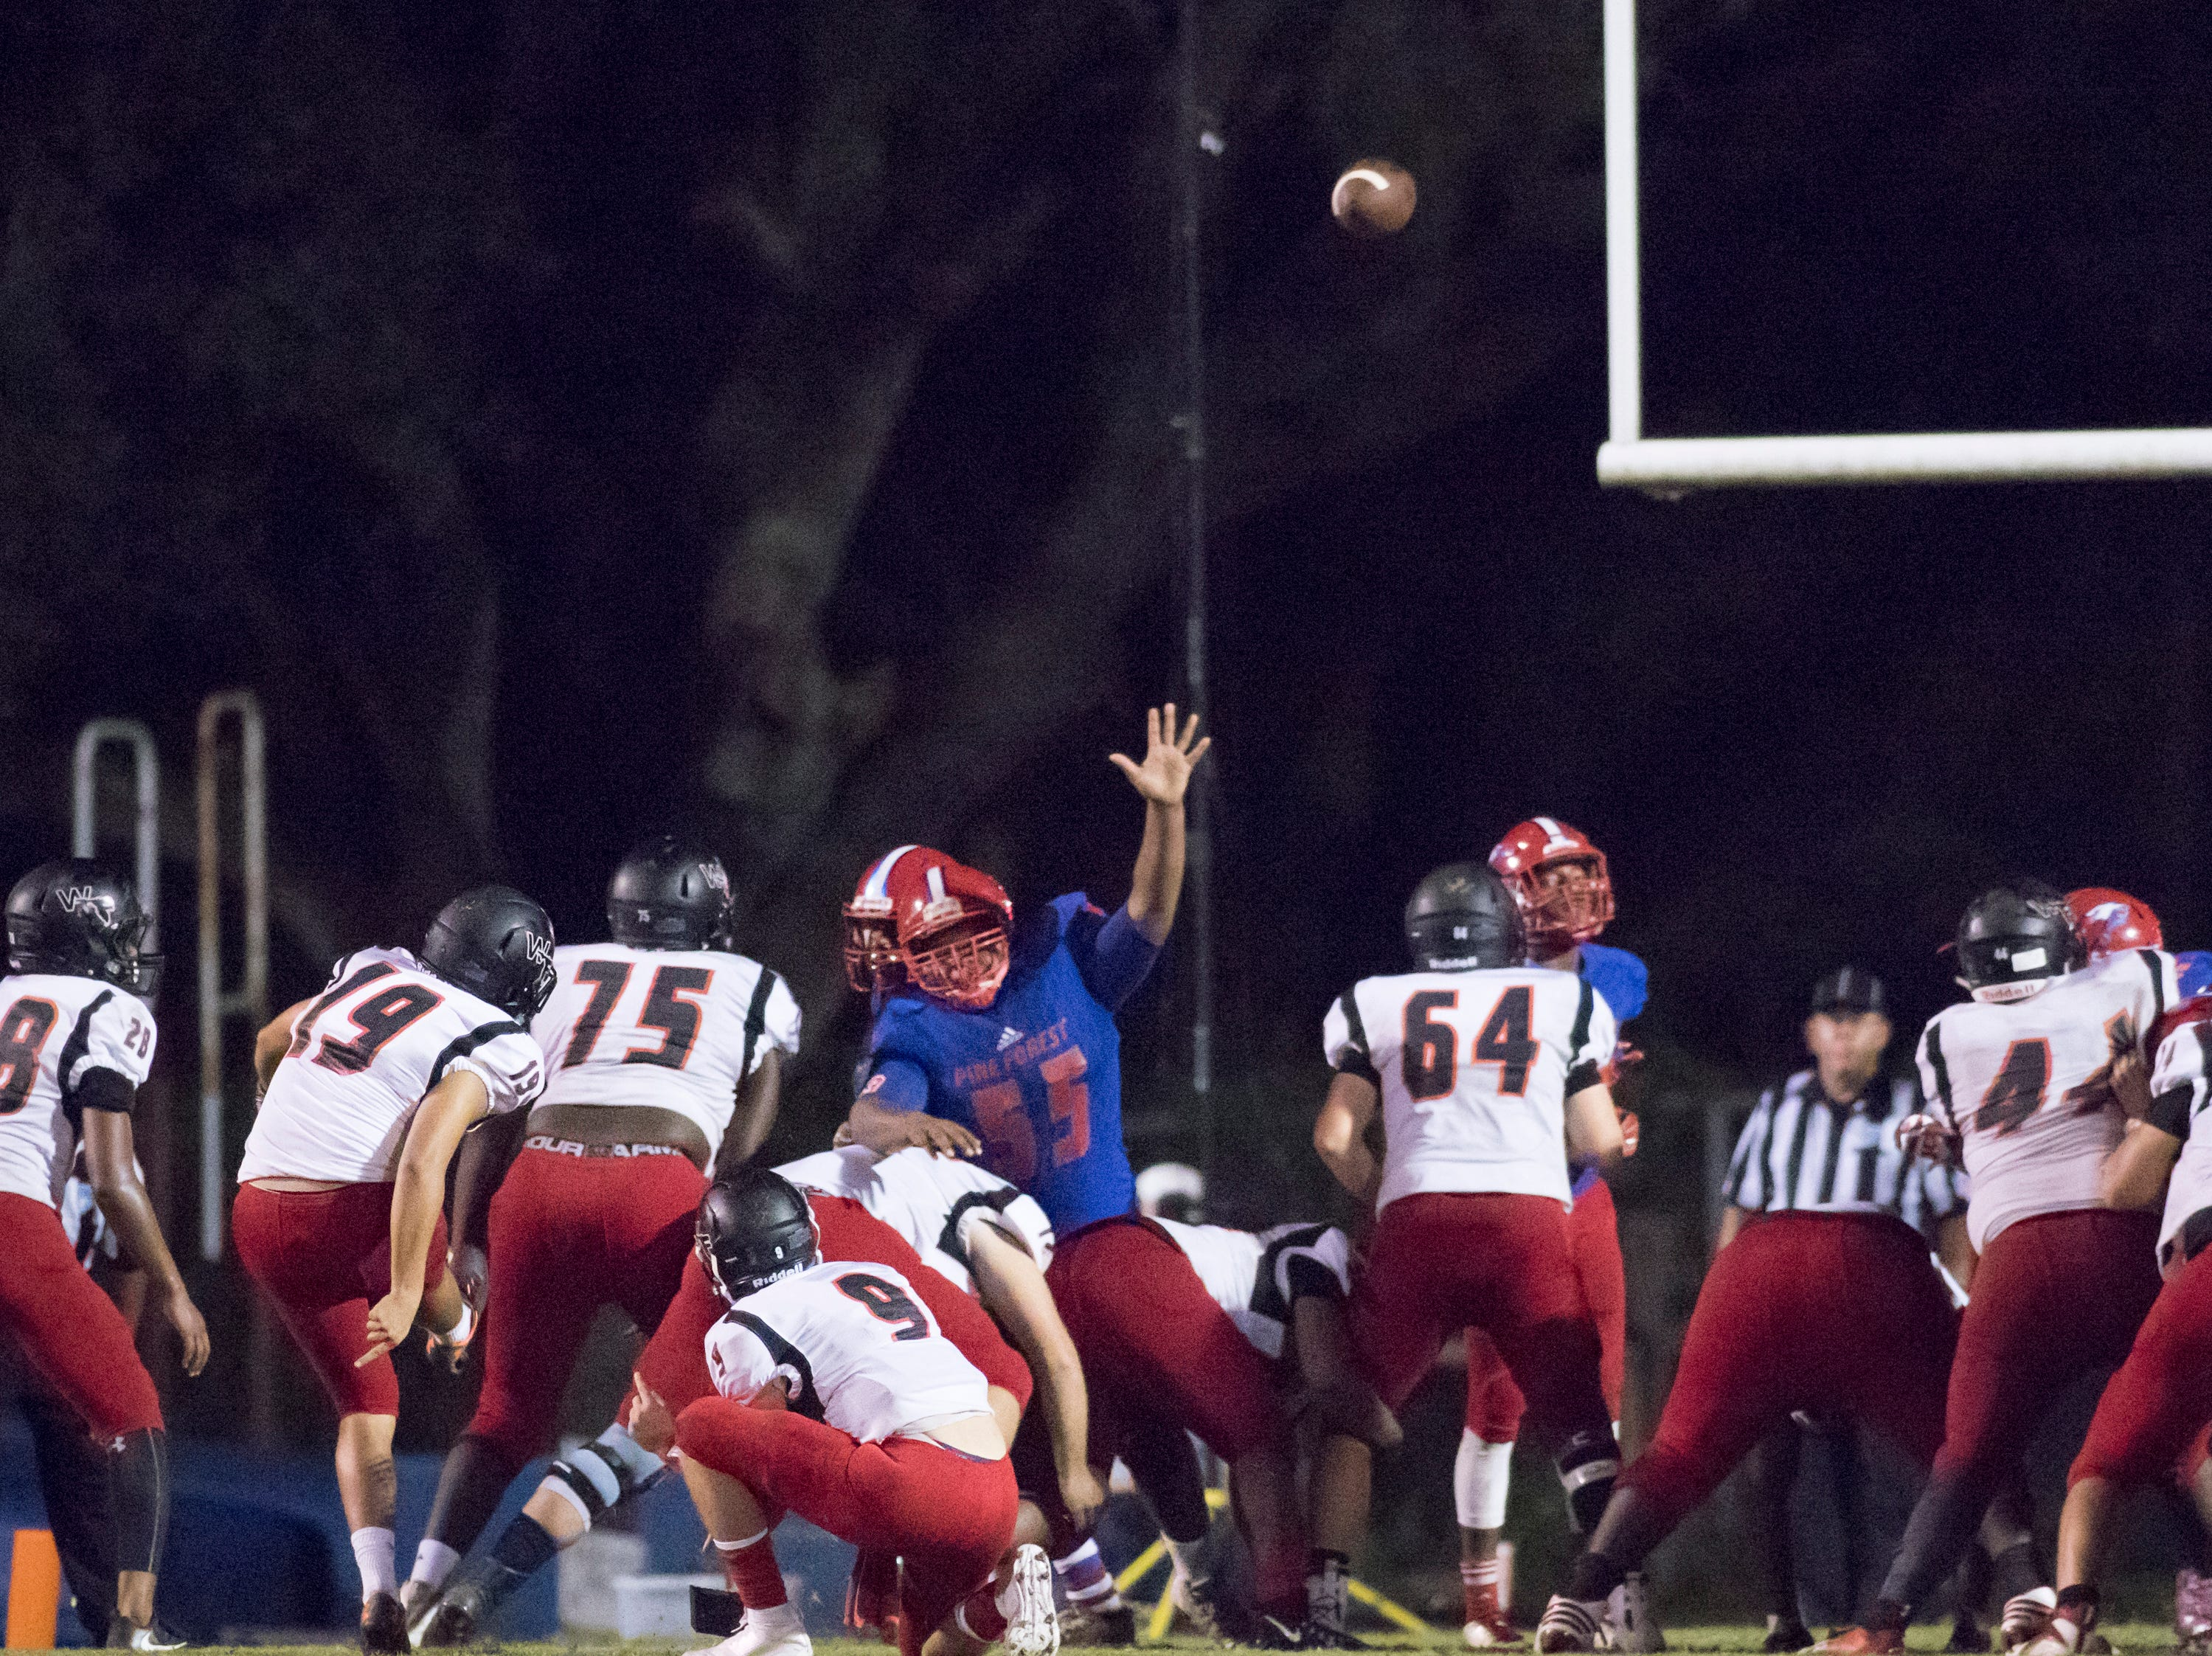 The Eagles' lead is cut to 24-19 after this Jaguars extra point during the West Florida vs Pine Forest football game at Pine Forest High School in Pensacola on Friday, October 5, 2018.